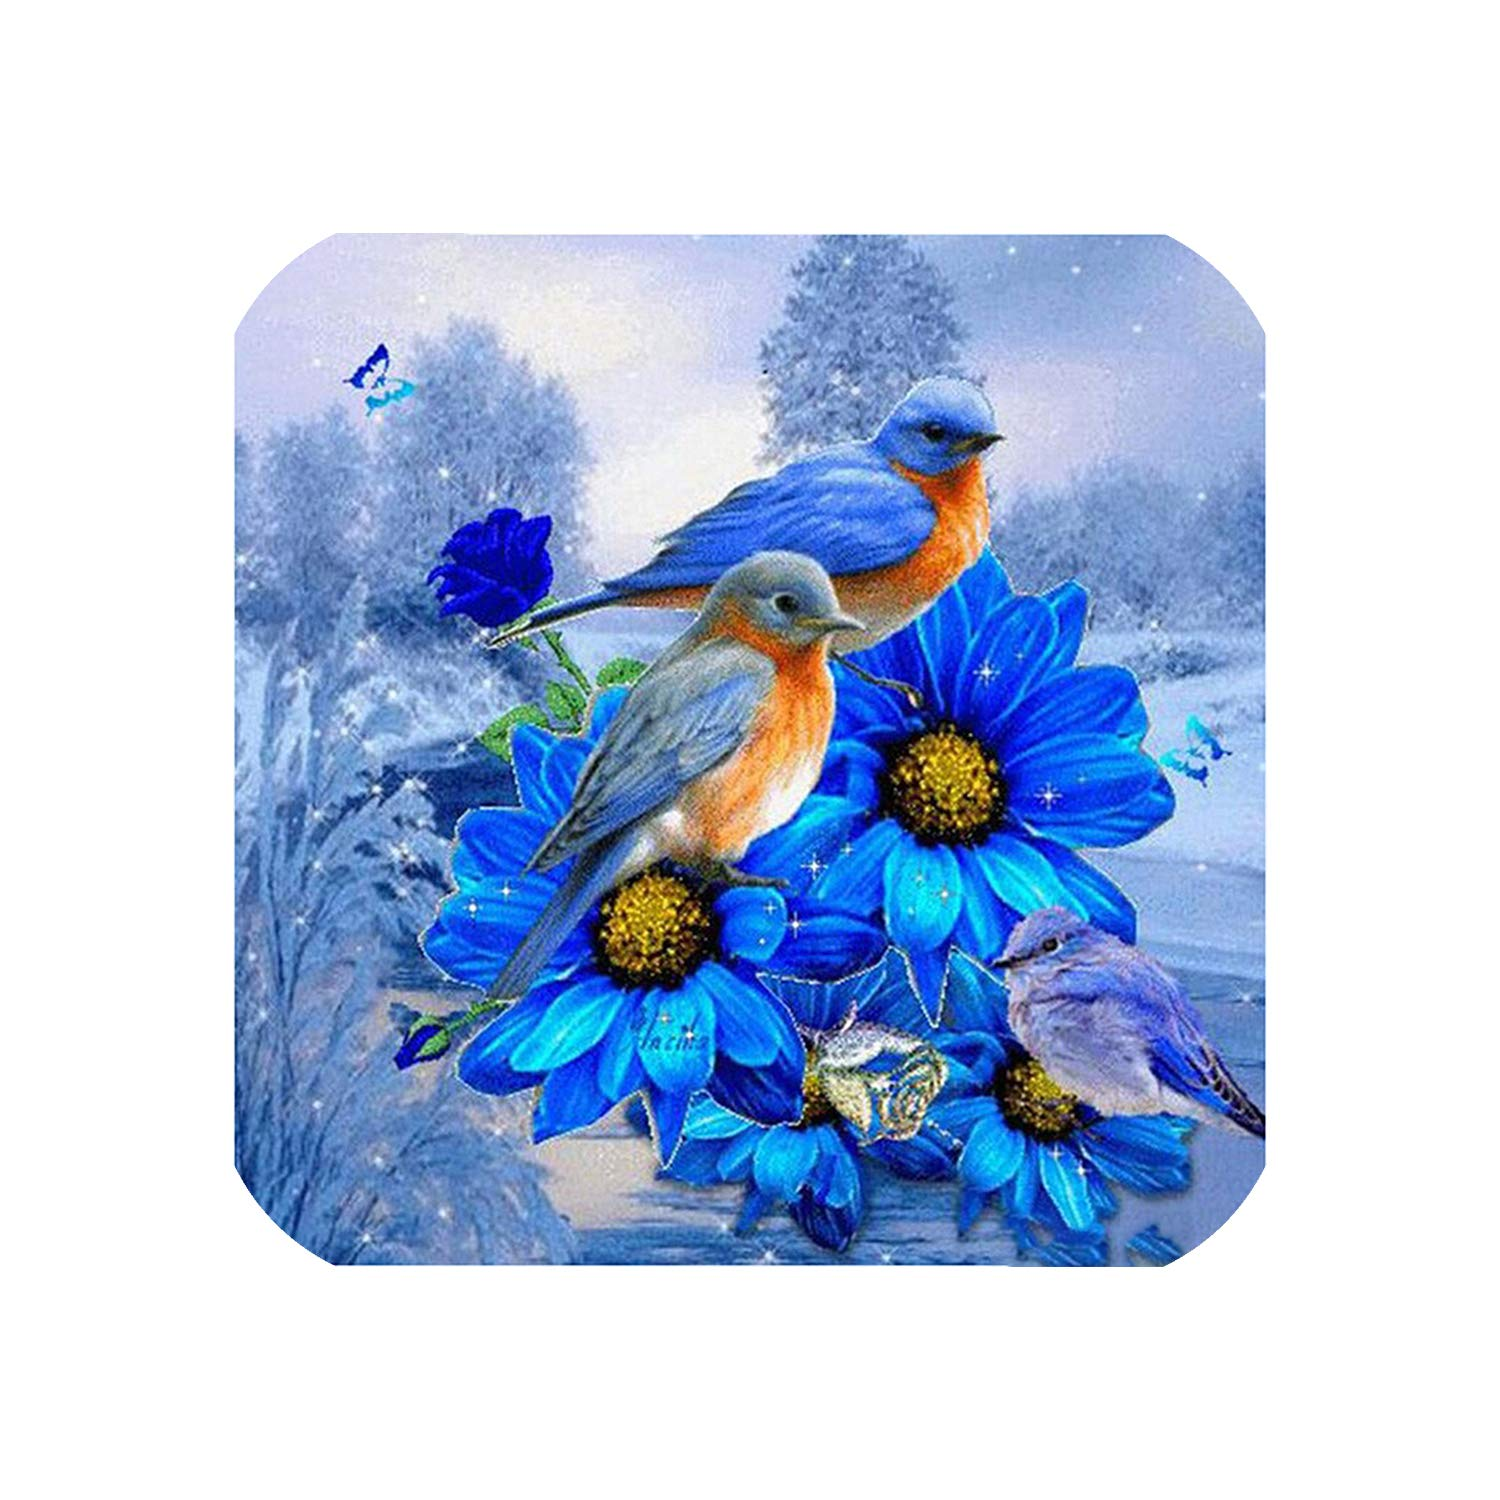 Wild-lOVE HOMFUN Complete/Square/Round Drill 5D DIY Diamond Painting Blue Flower and Bird 3D Embroidery Cross Stitch 5D Home Decoration A01527,Square Drill 120x120